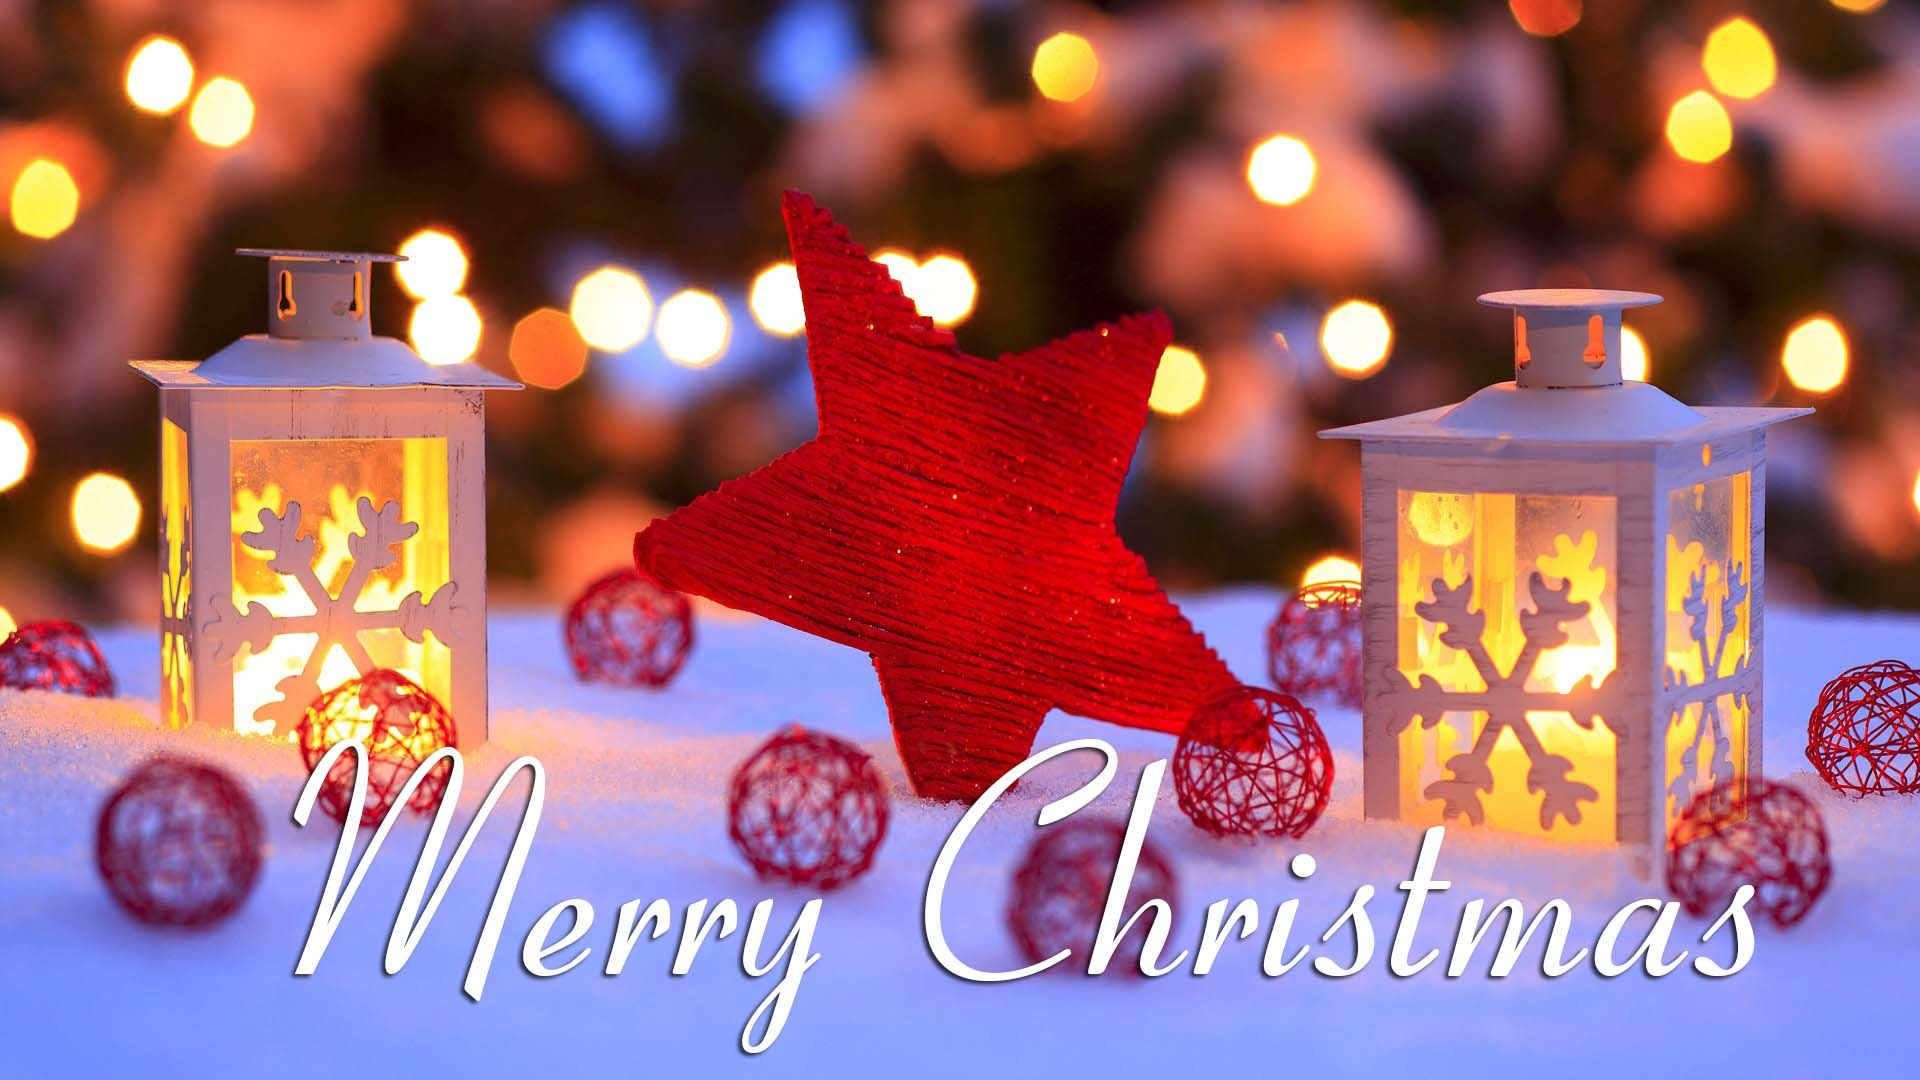 Download Best Hd Merry Christmas Wallpapers Merry Christmas Wallpaper Merry Christmas Quotes Merry Christmas 2017